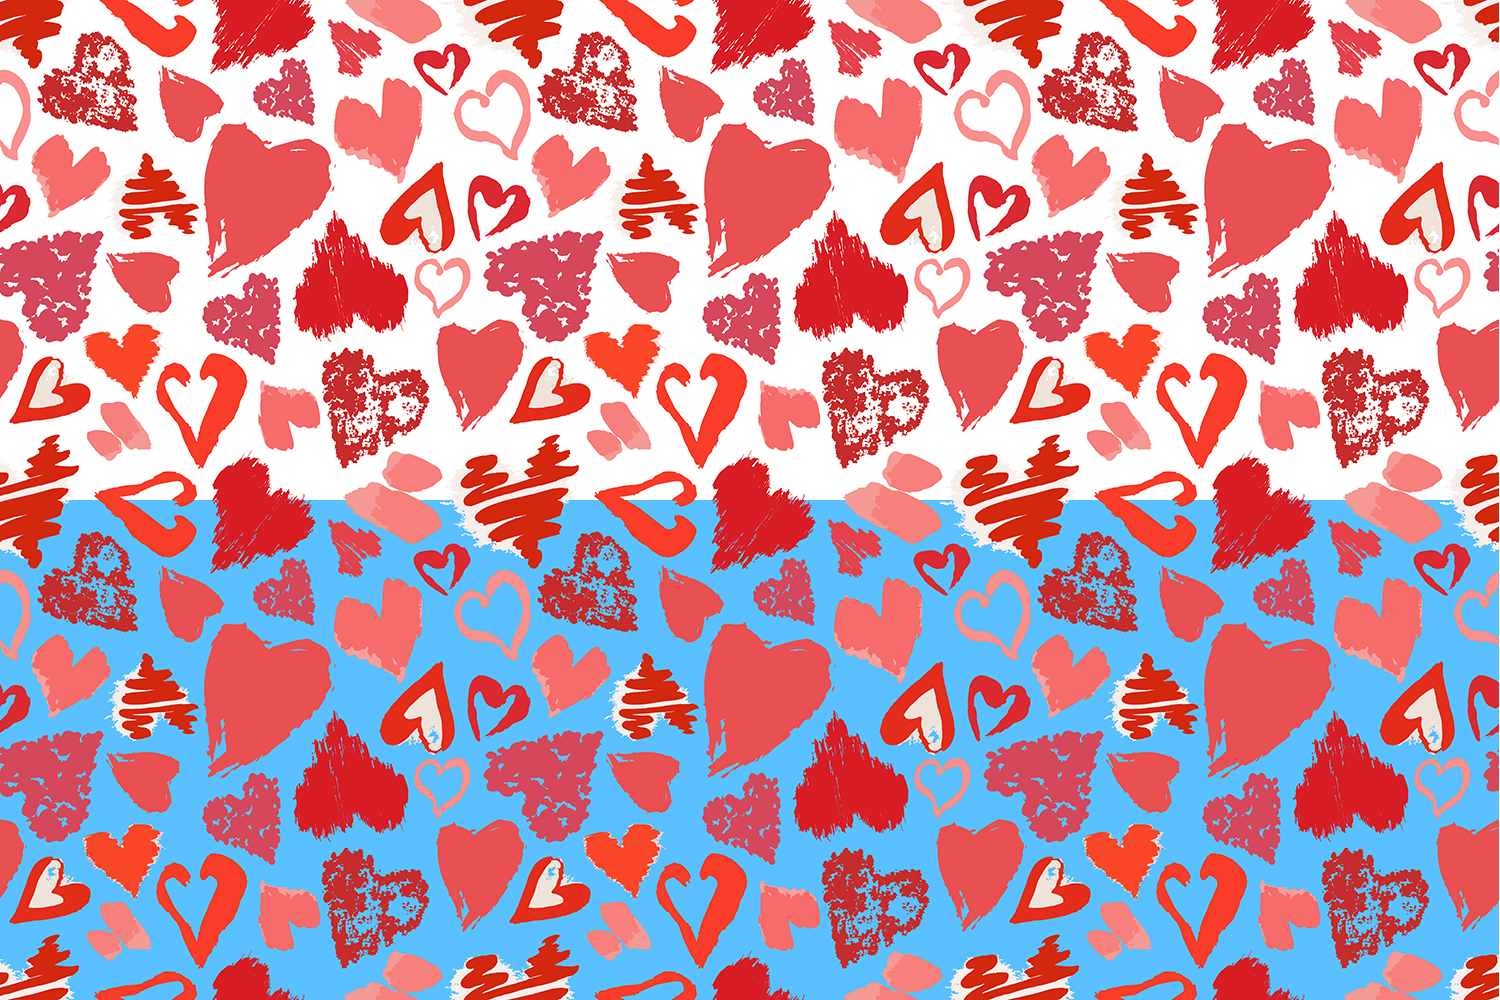 Vector grunge hearts+pattern example image 2